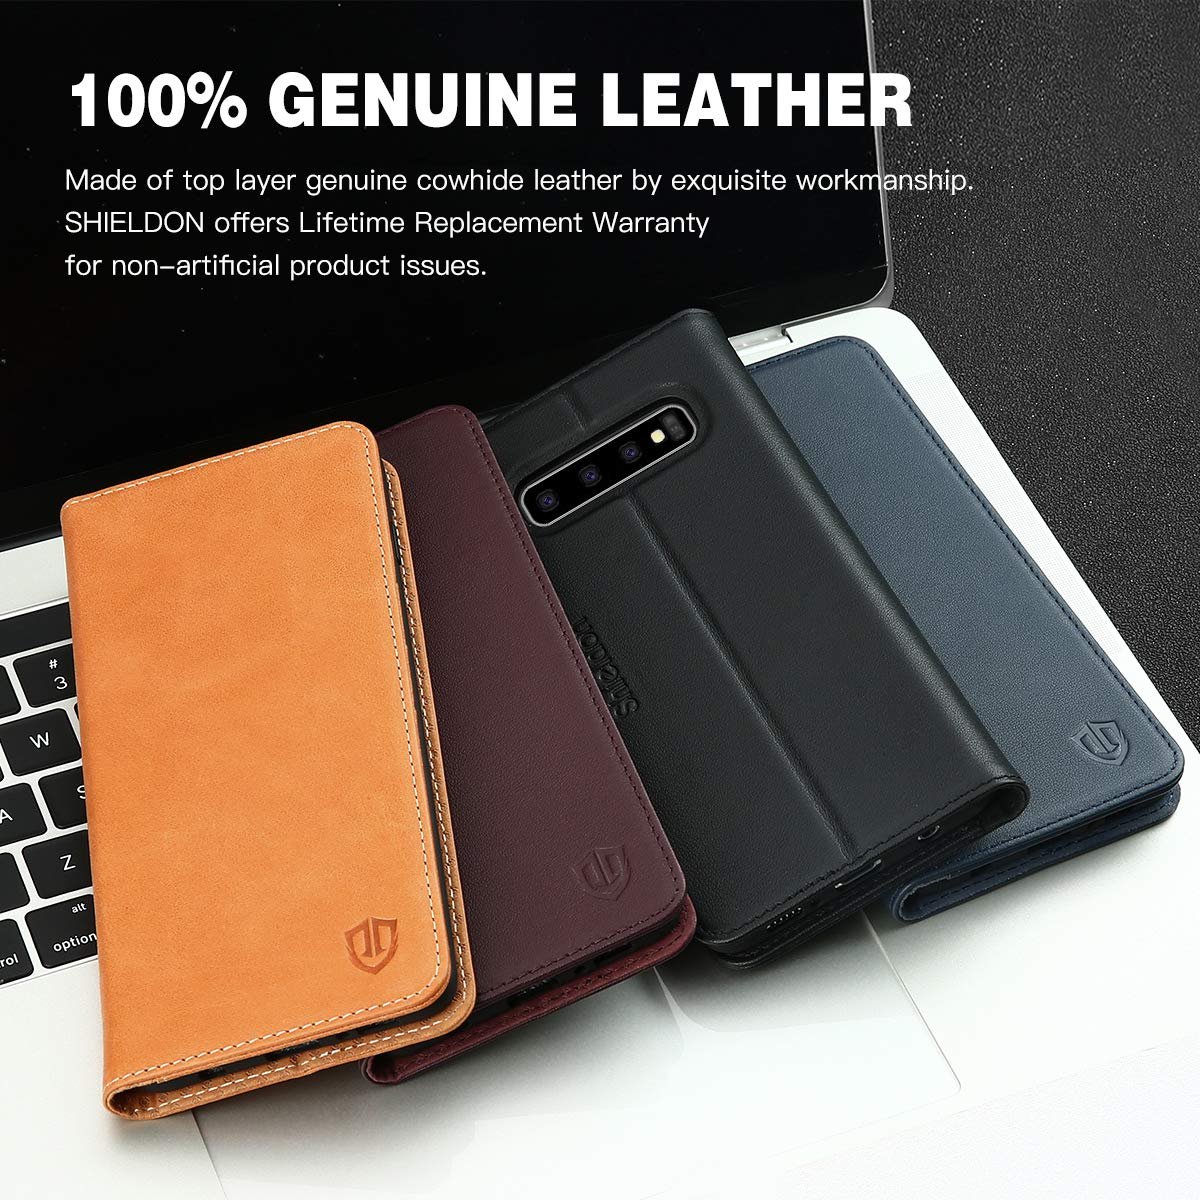 Galaxy S10 Plus Case Full Protection Case Compatible with Galaxy S10 Plus SHIELDON Genuine Leather S10+ Plus Wallet Case with Magnetic Folio Flip Cover Credit Card Holder - Dark Blue 6.4 Inch